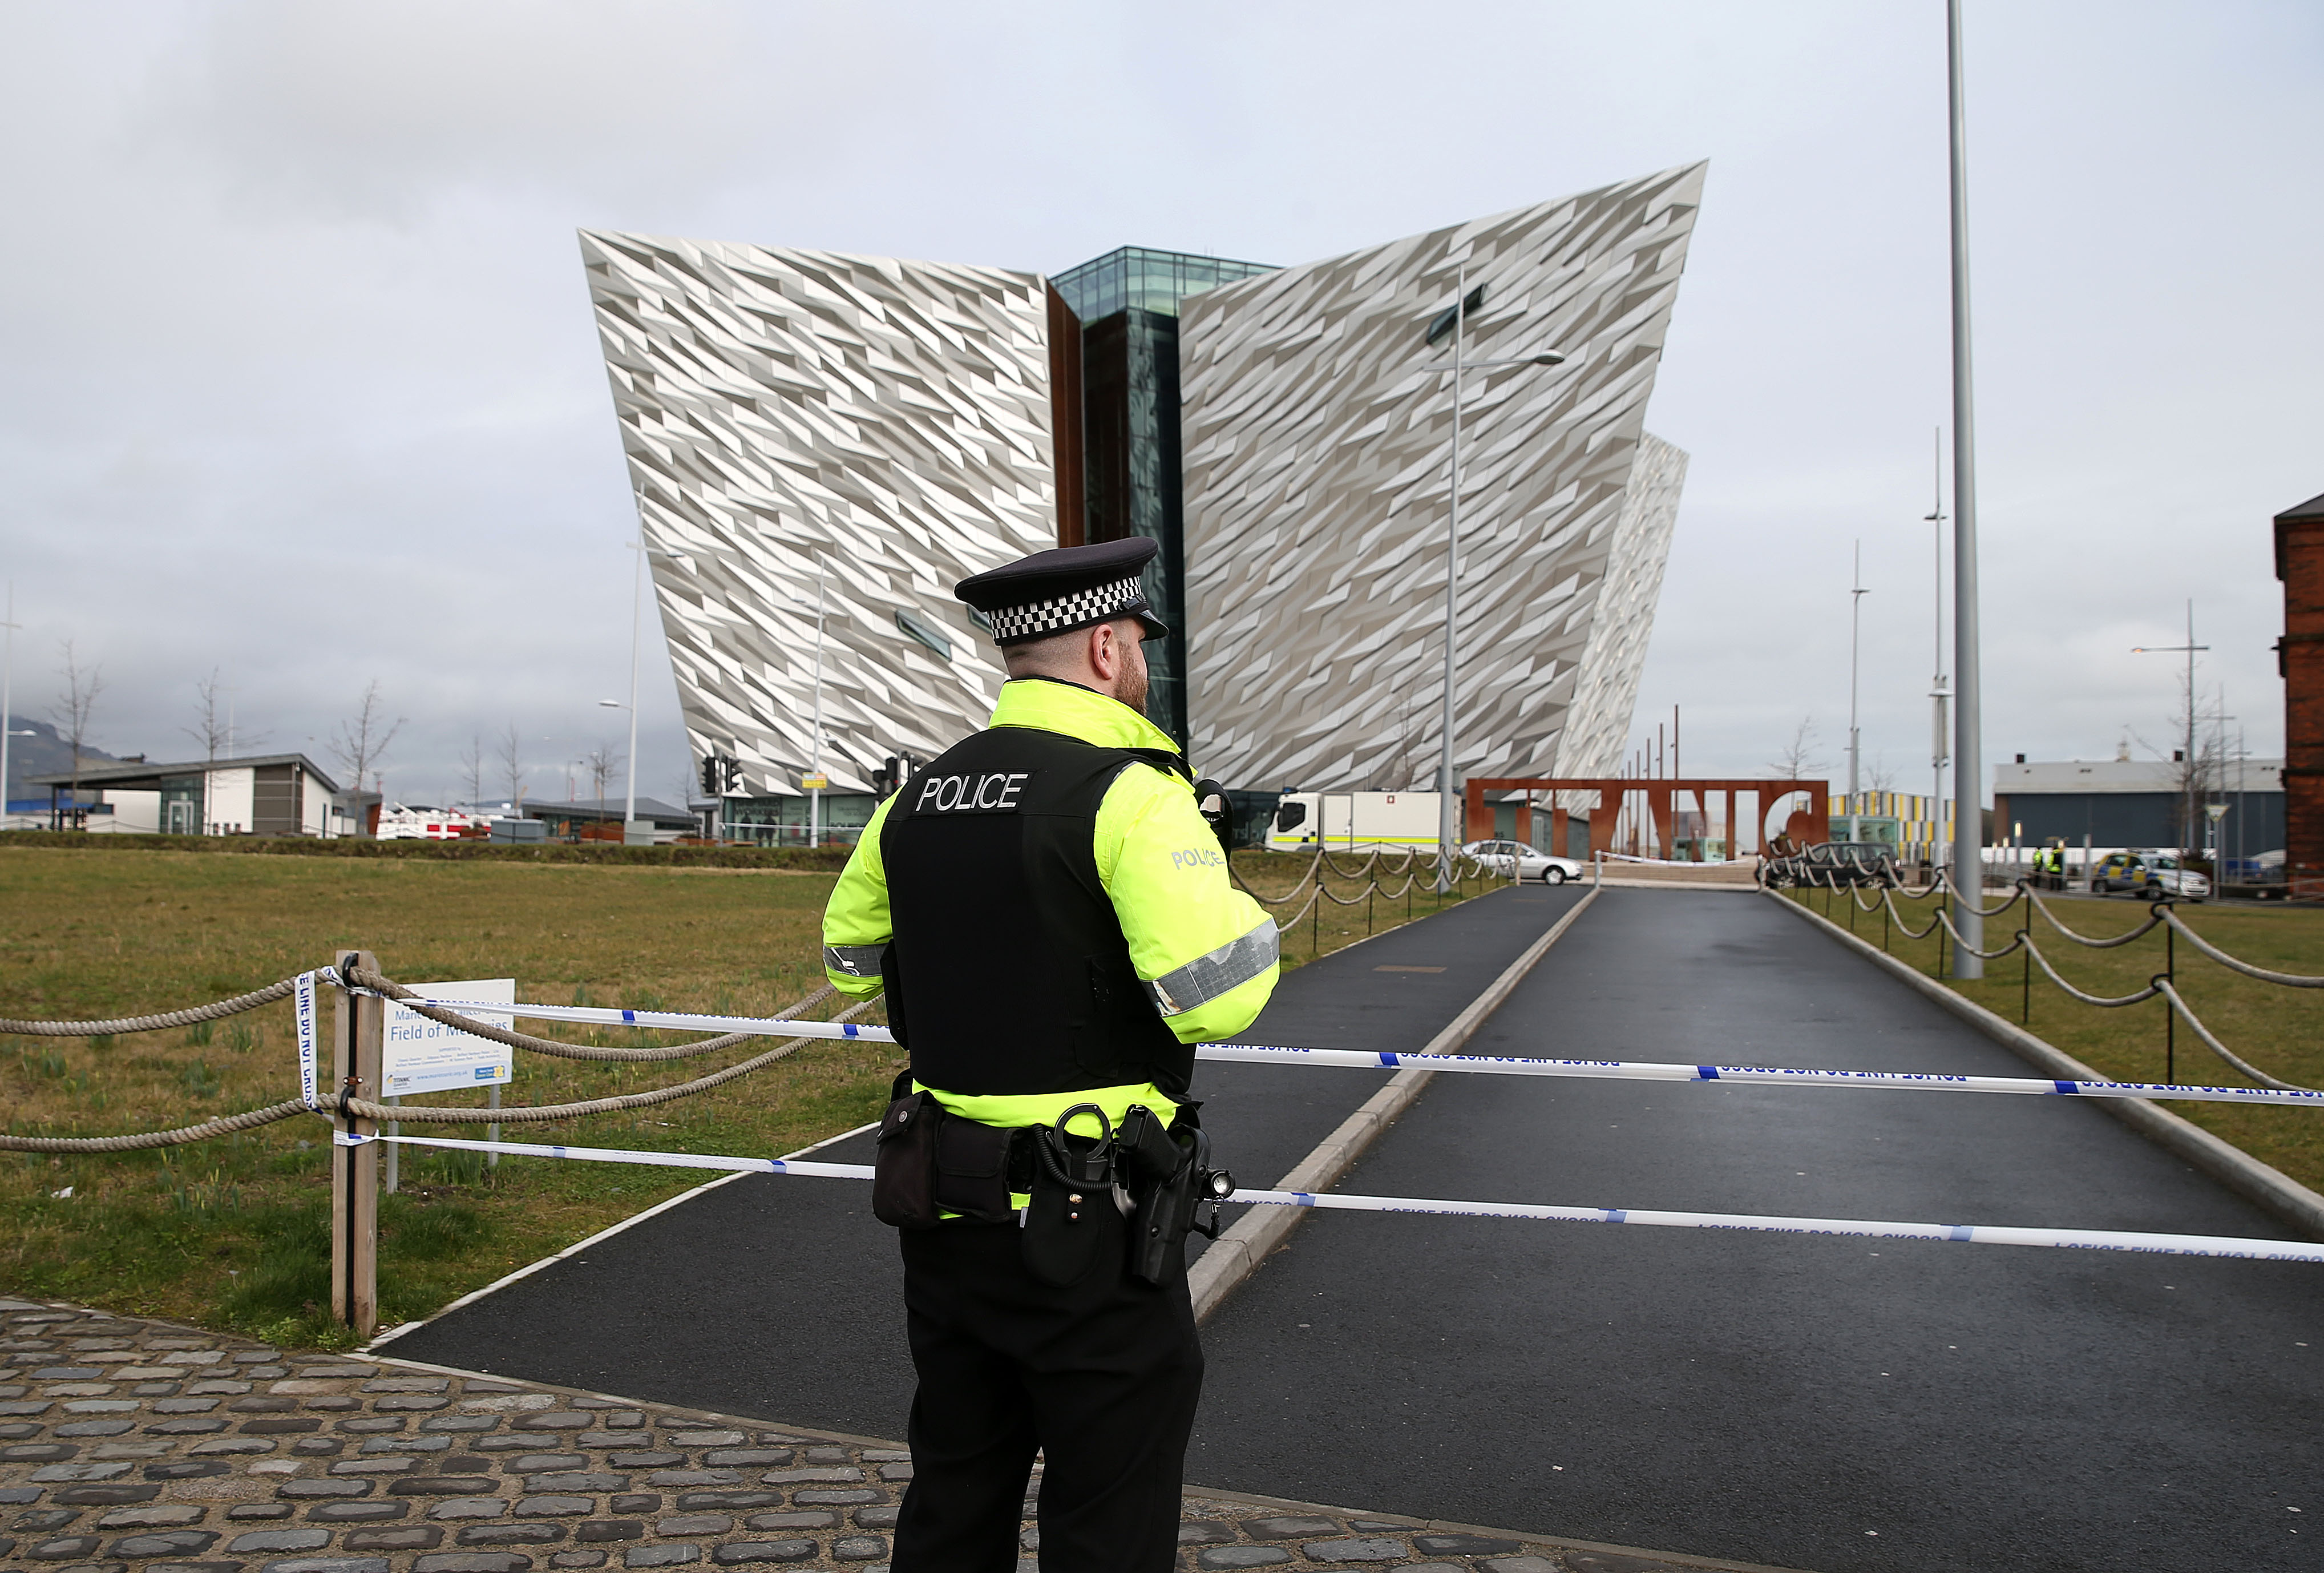 'Policing at crisis point' a year on from Stormont's collapse - PFNI